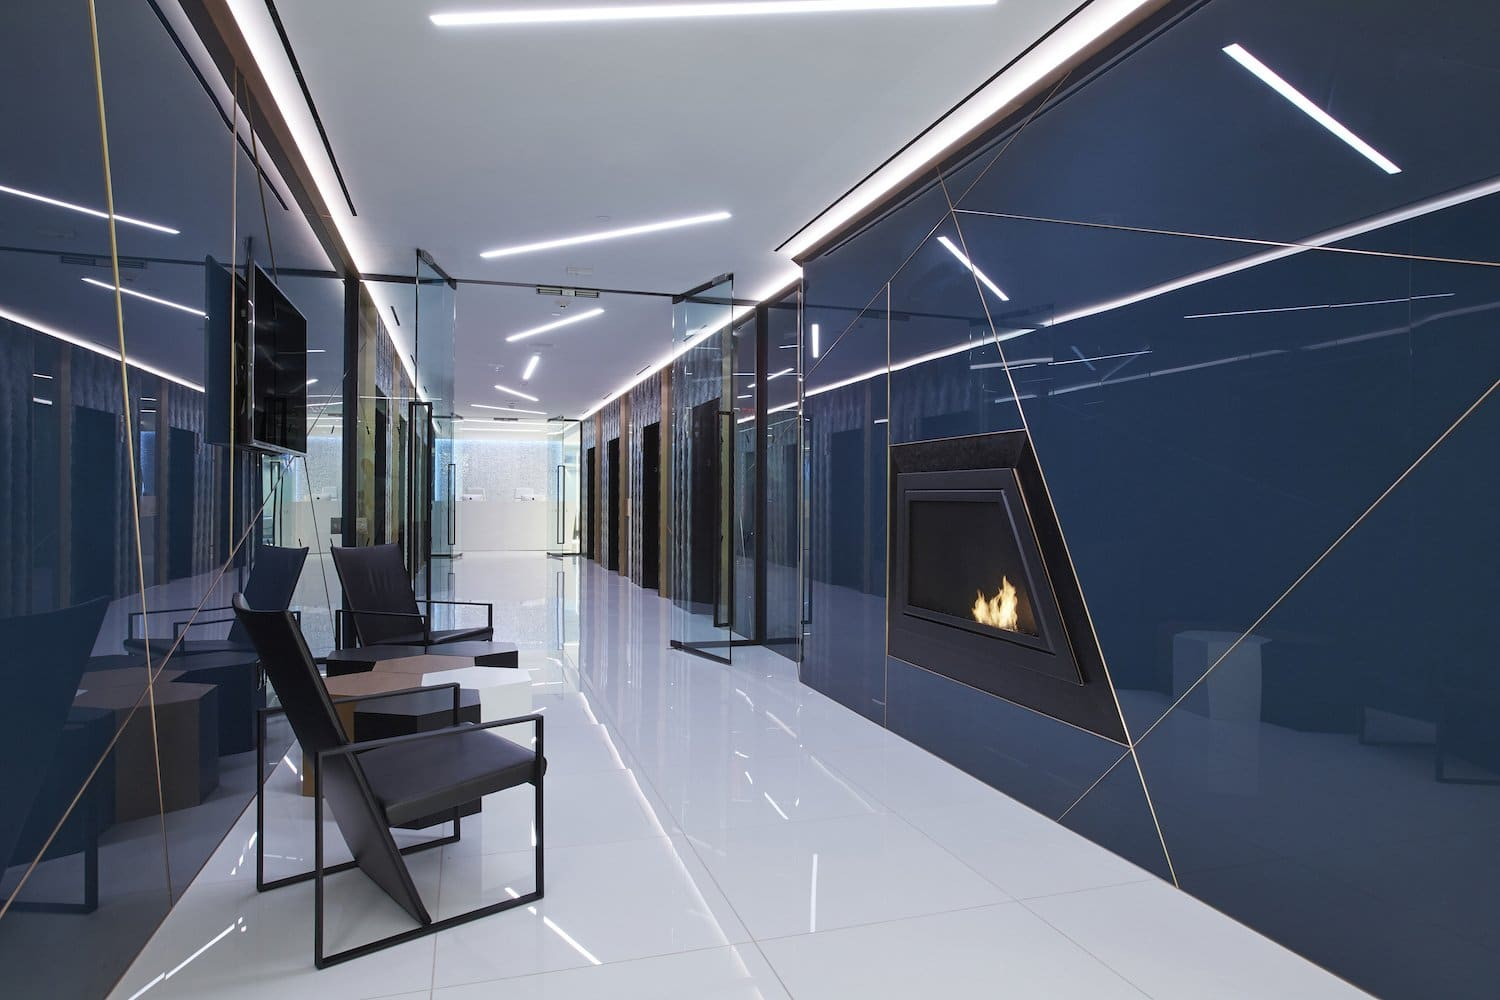 Hallway with fireplace and sitting area